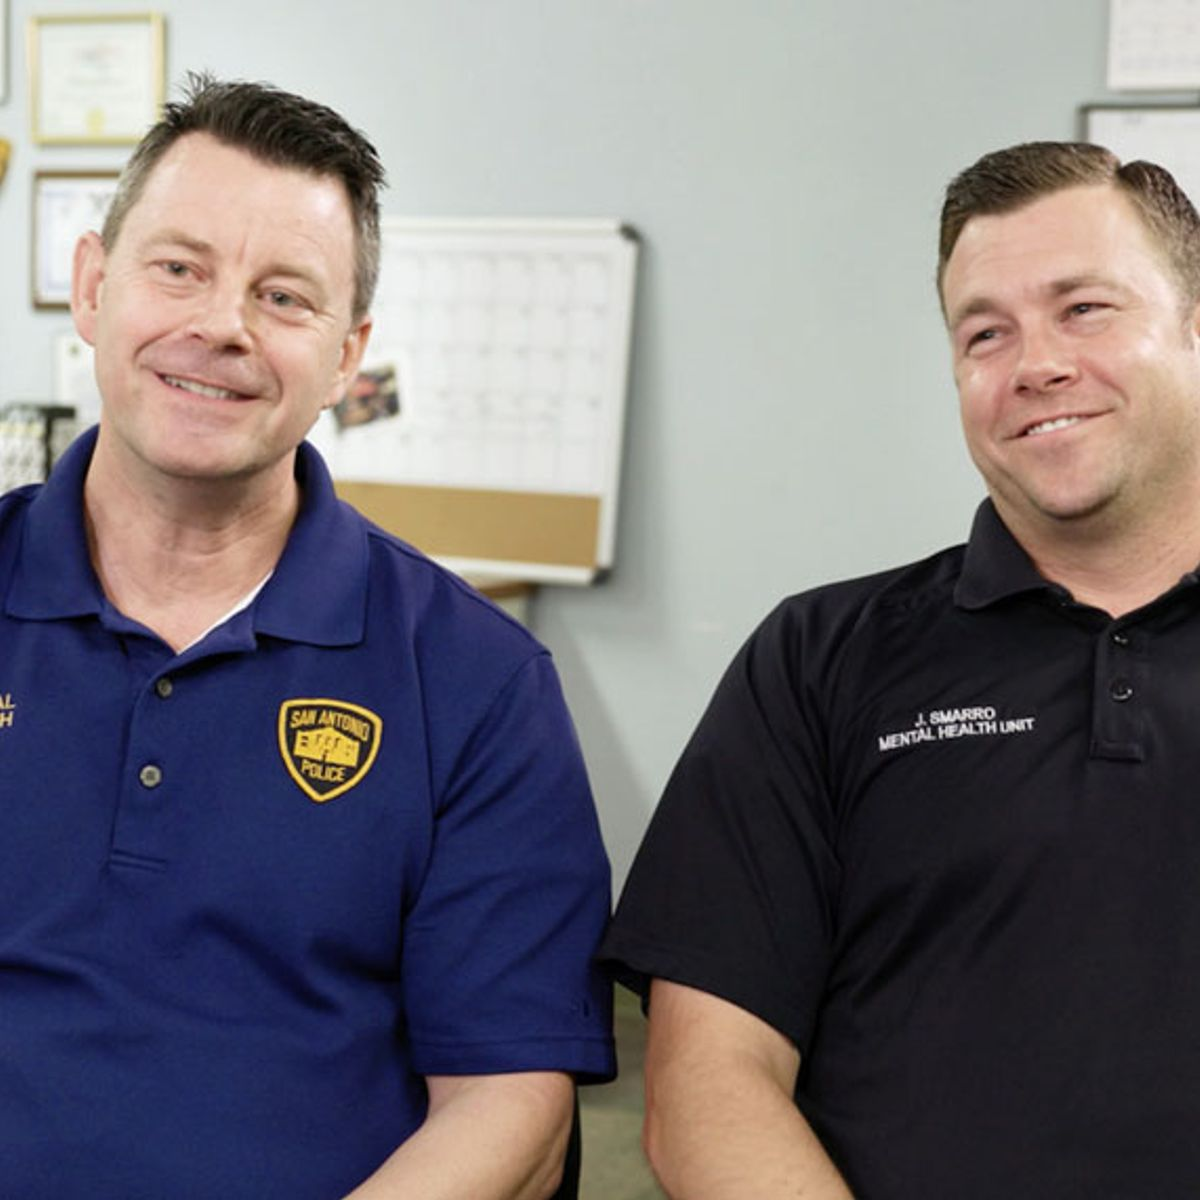 """In """"Ernie & Joe,"""" cops help the suicidal or mentally ill without criminalizing them"""